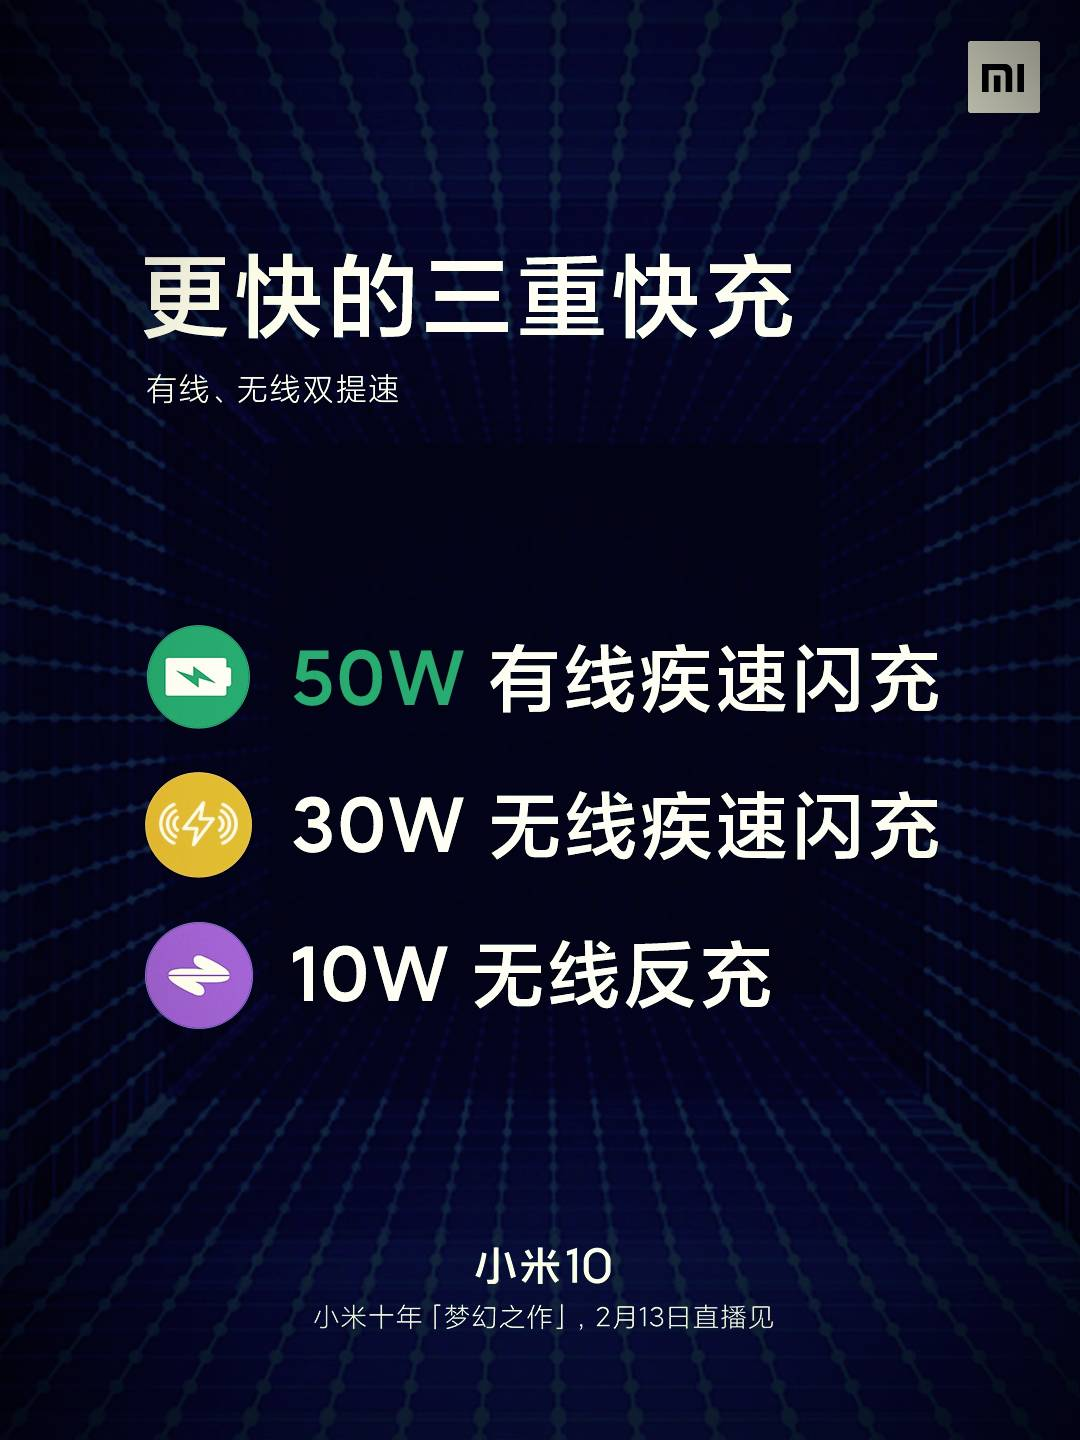 Xiaomi Mi 10 new generation triple fast charge announced: fast blood return